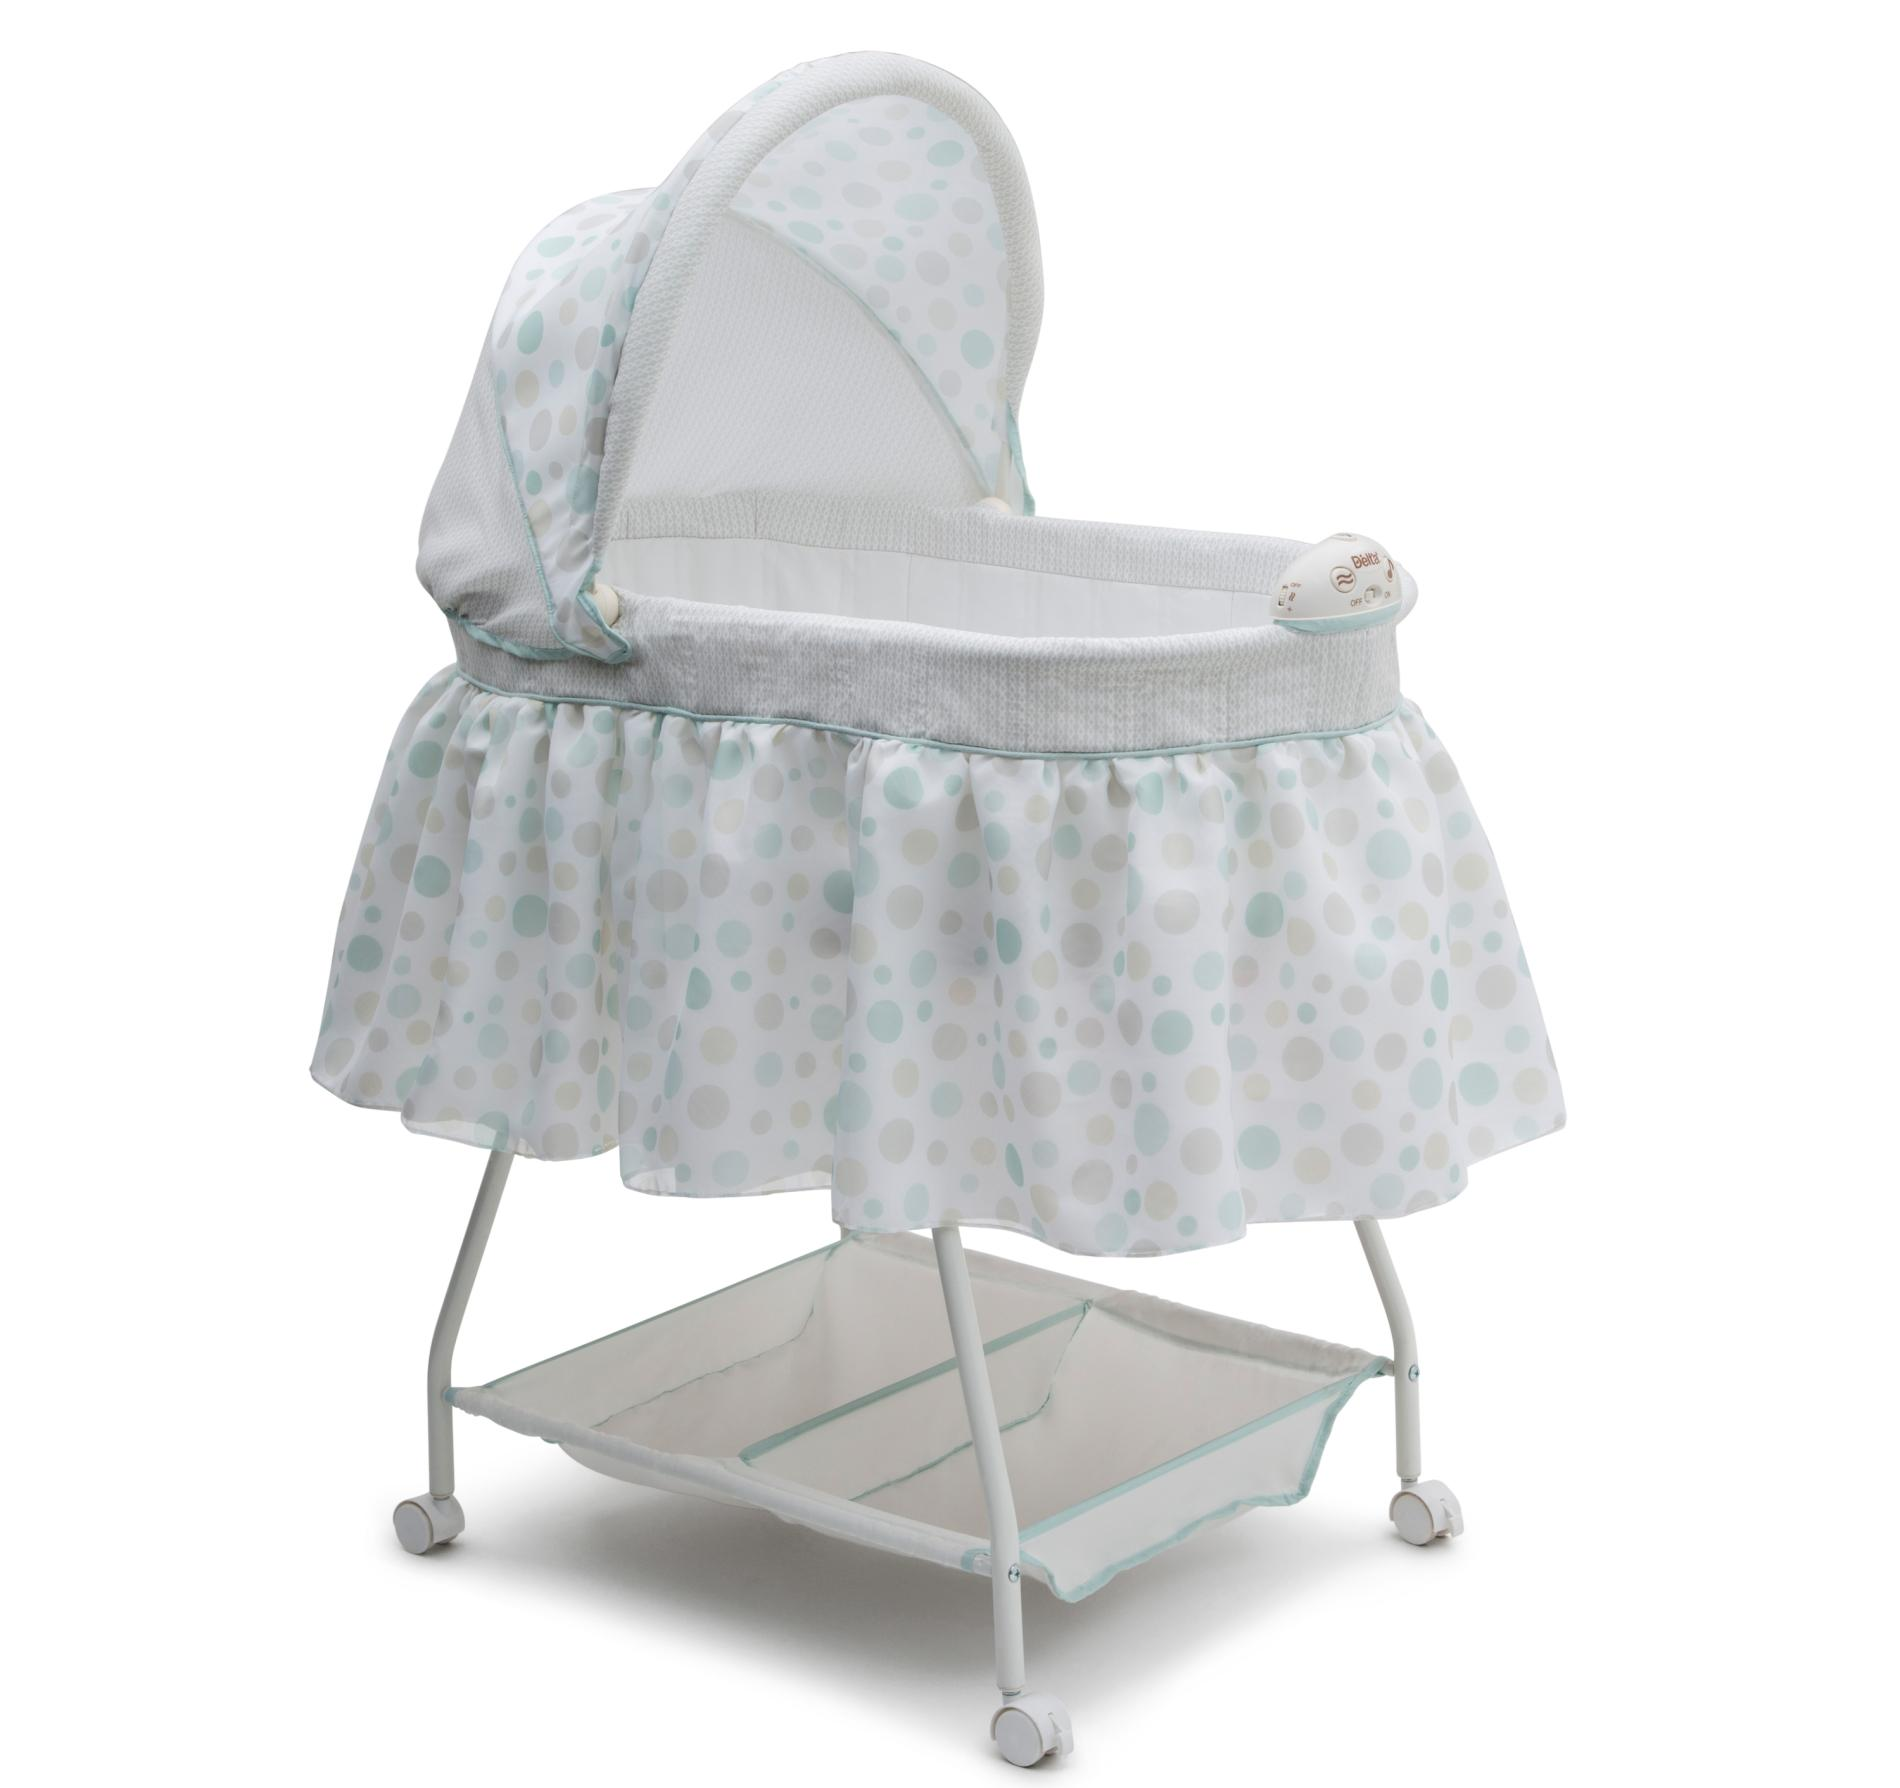 Baby Mattress Kmart Check Out Delta Children Infant S Sweet Beginnings Bassinet Dots Shopyourway